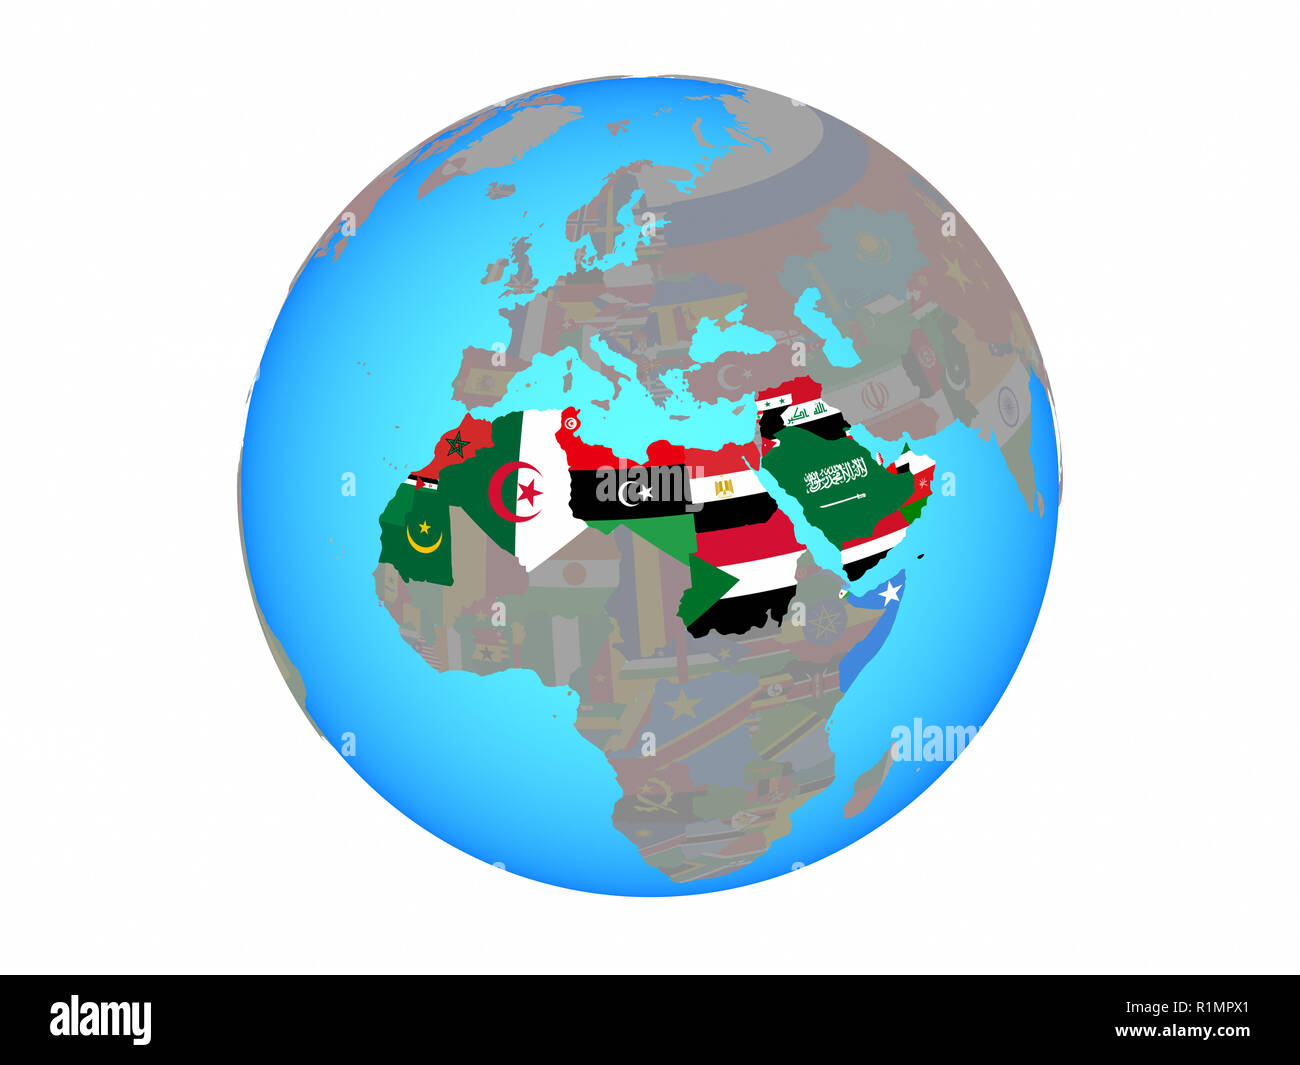 Picture of: Arab League With National Flags On Blue Political Globe 3d Illustration Isolated On White Background Stock Photo Alamy